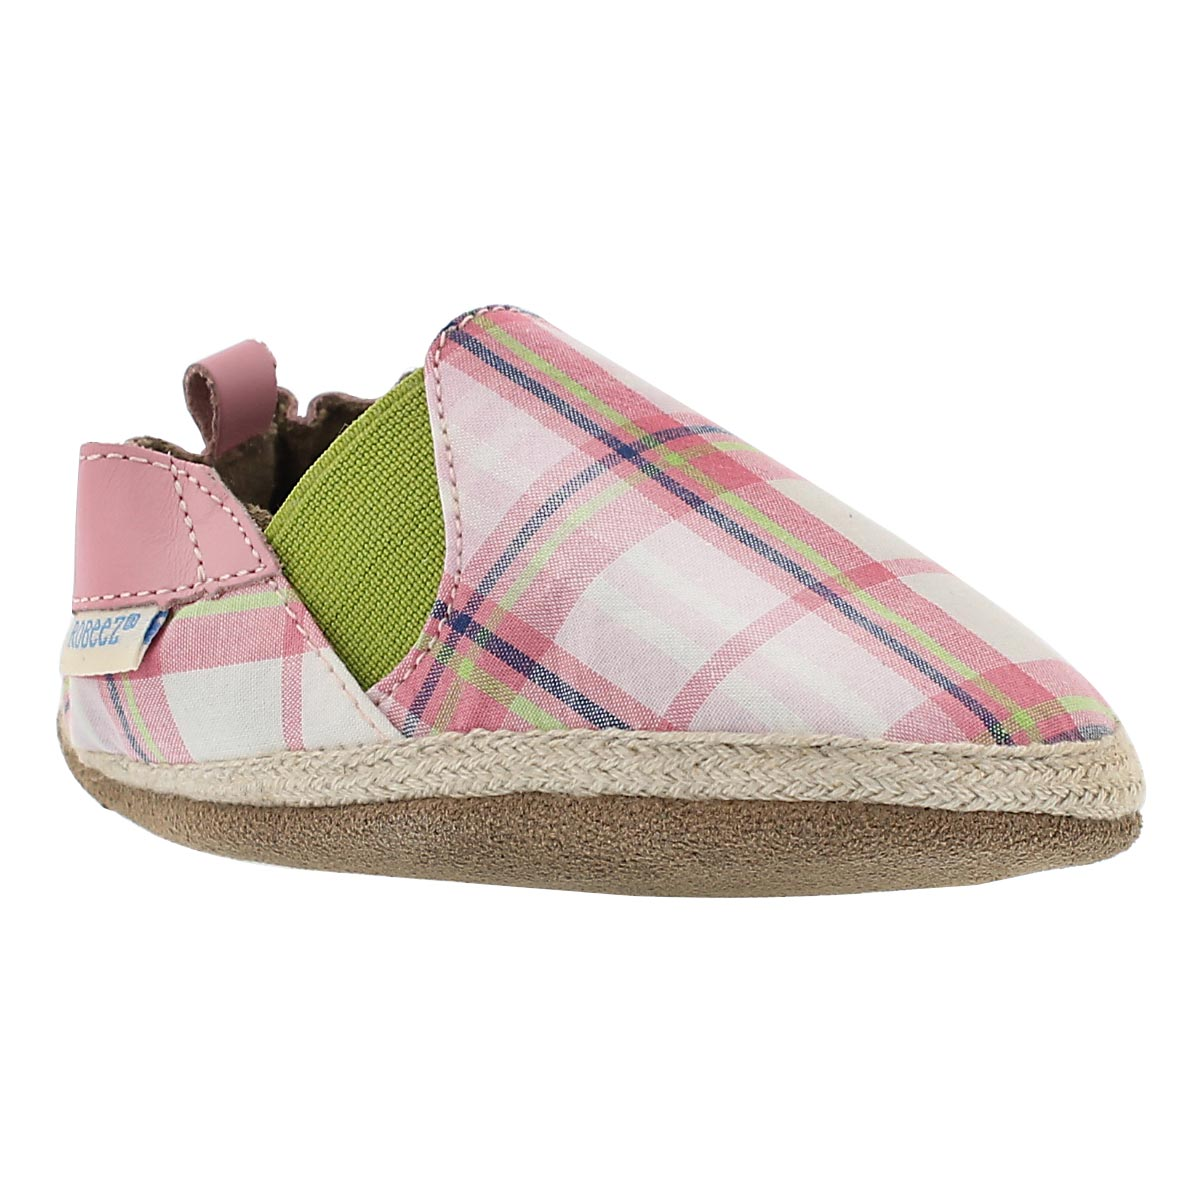 Inf Plaid Mania pink soft slipper